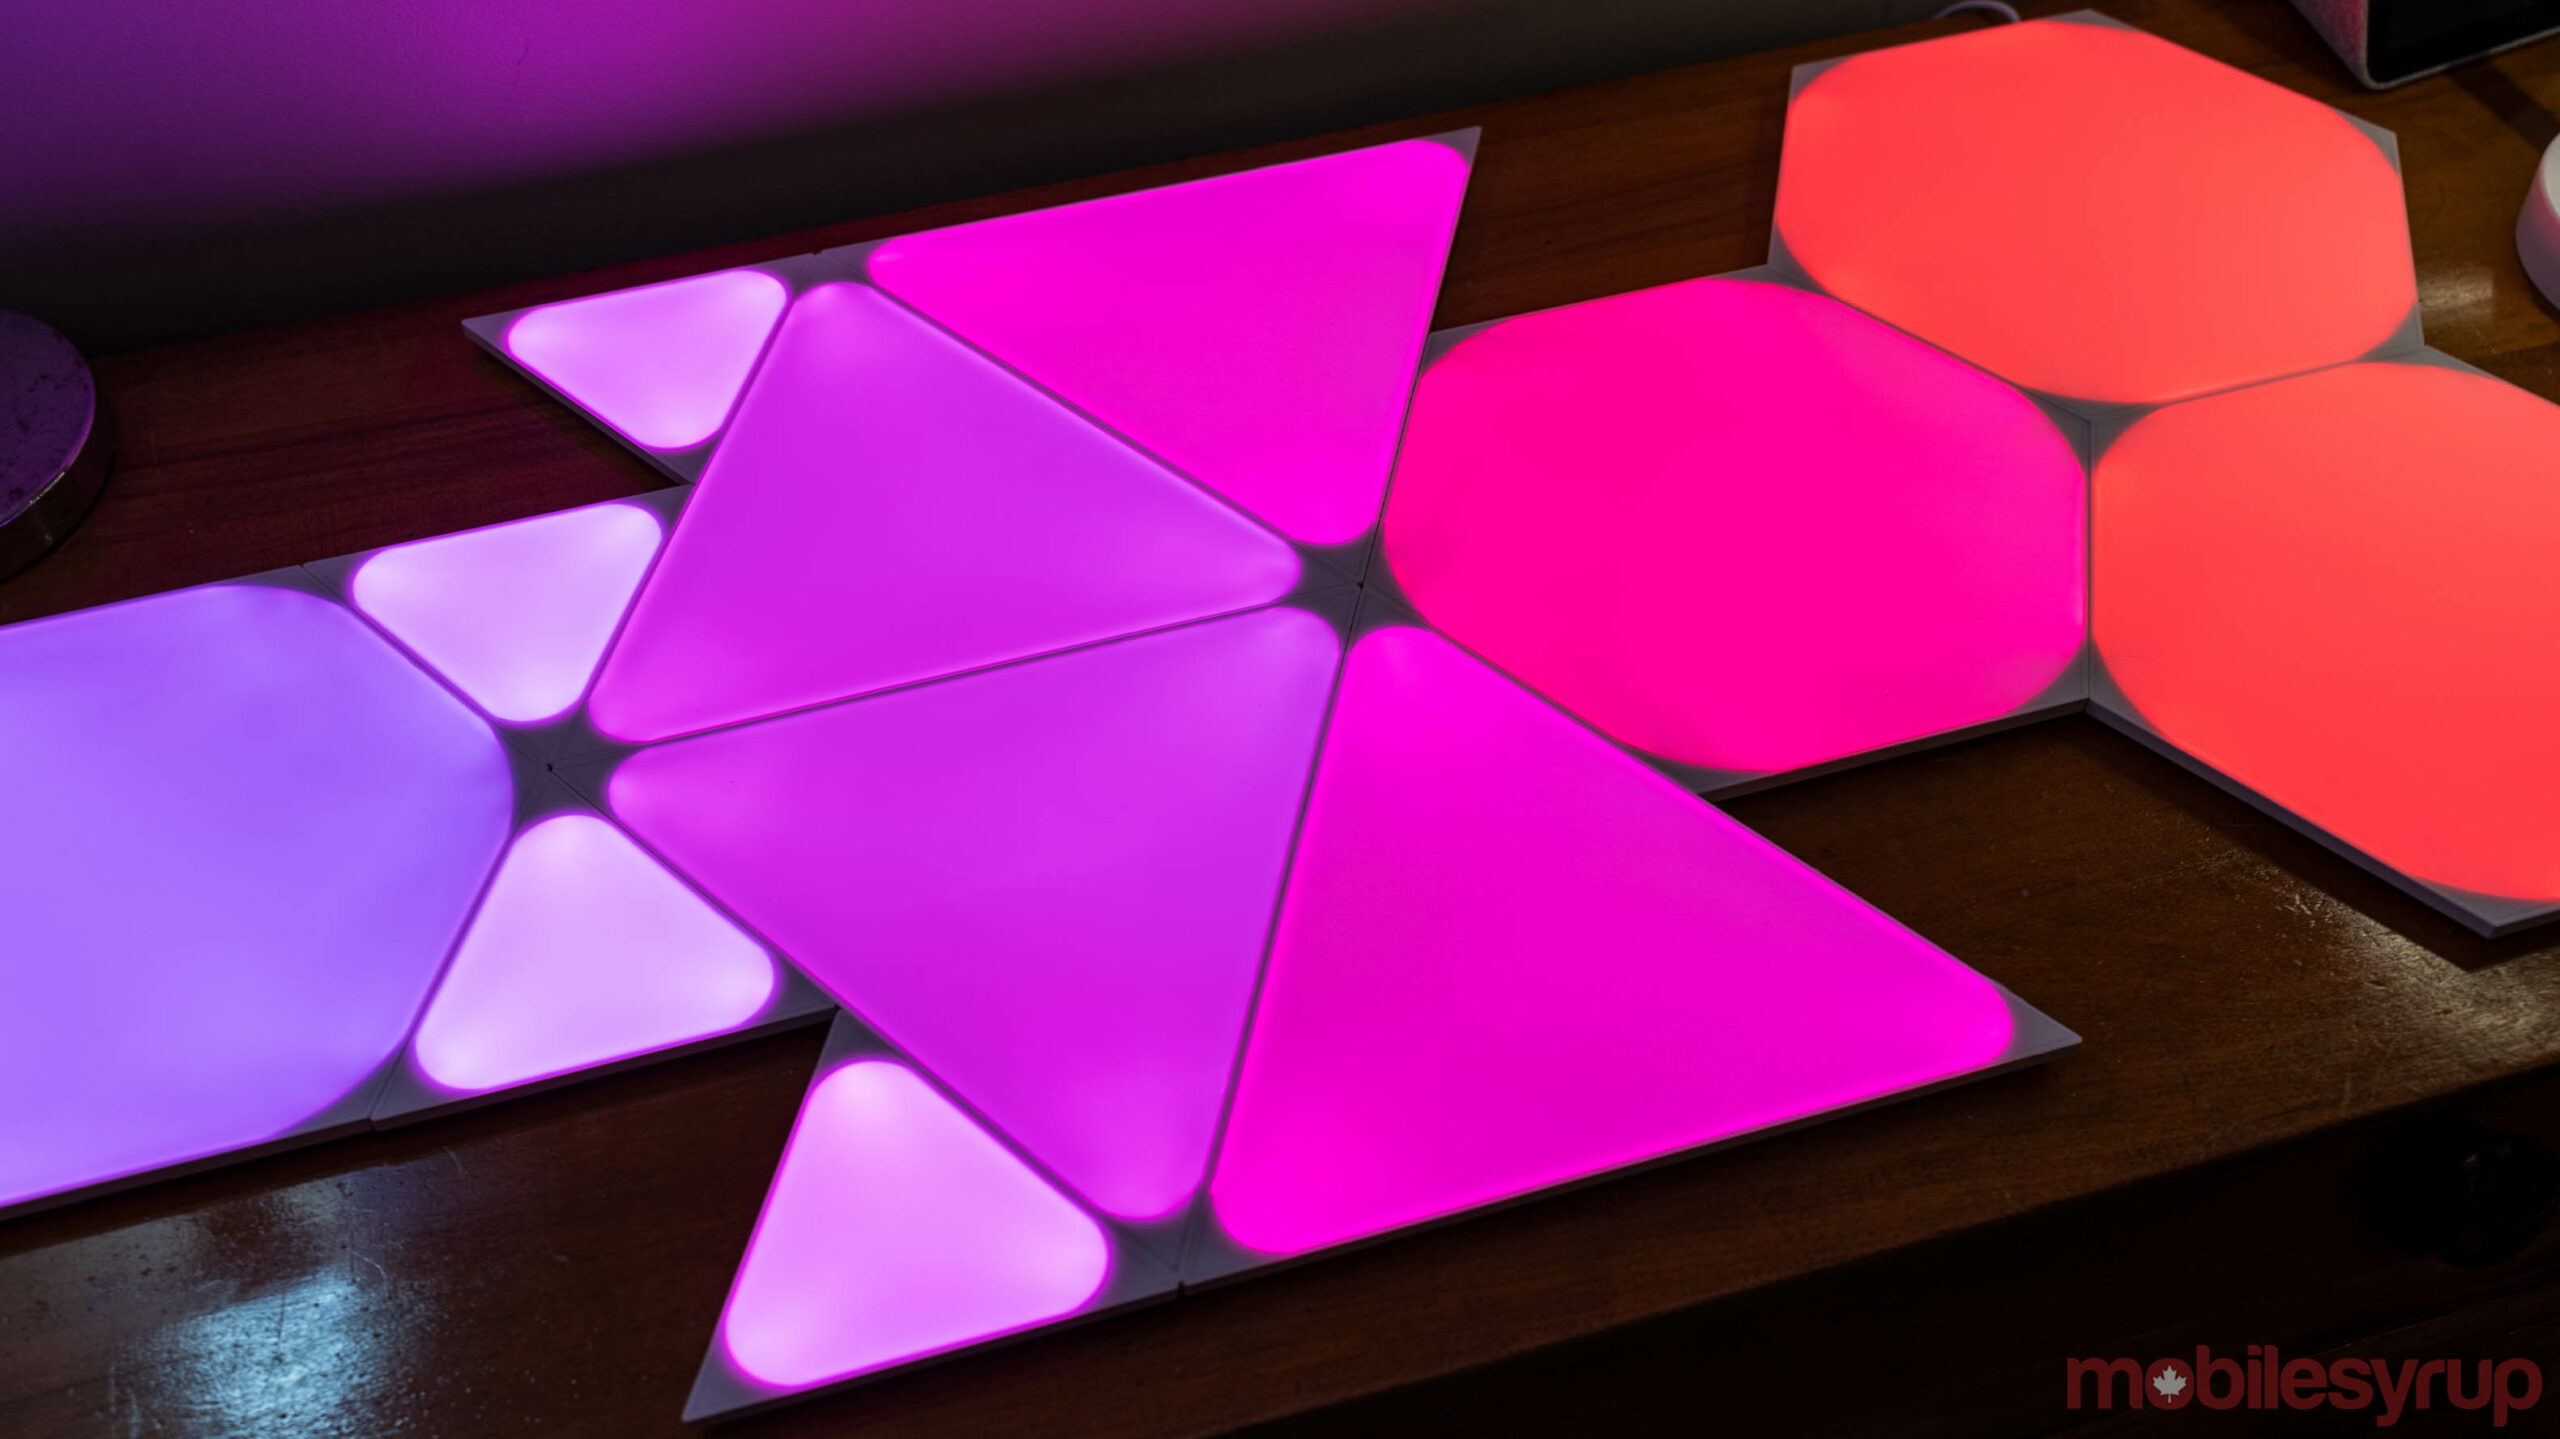 Nanoleaf Shapes with Triangles, Mini Triangles and Hexagons